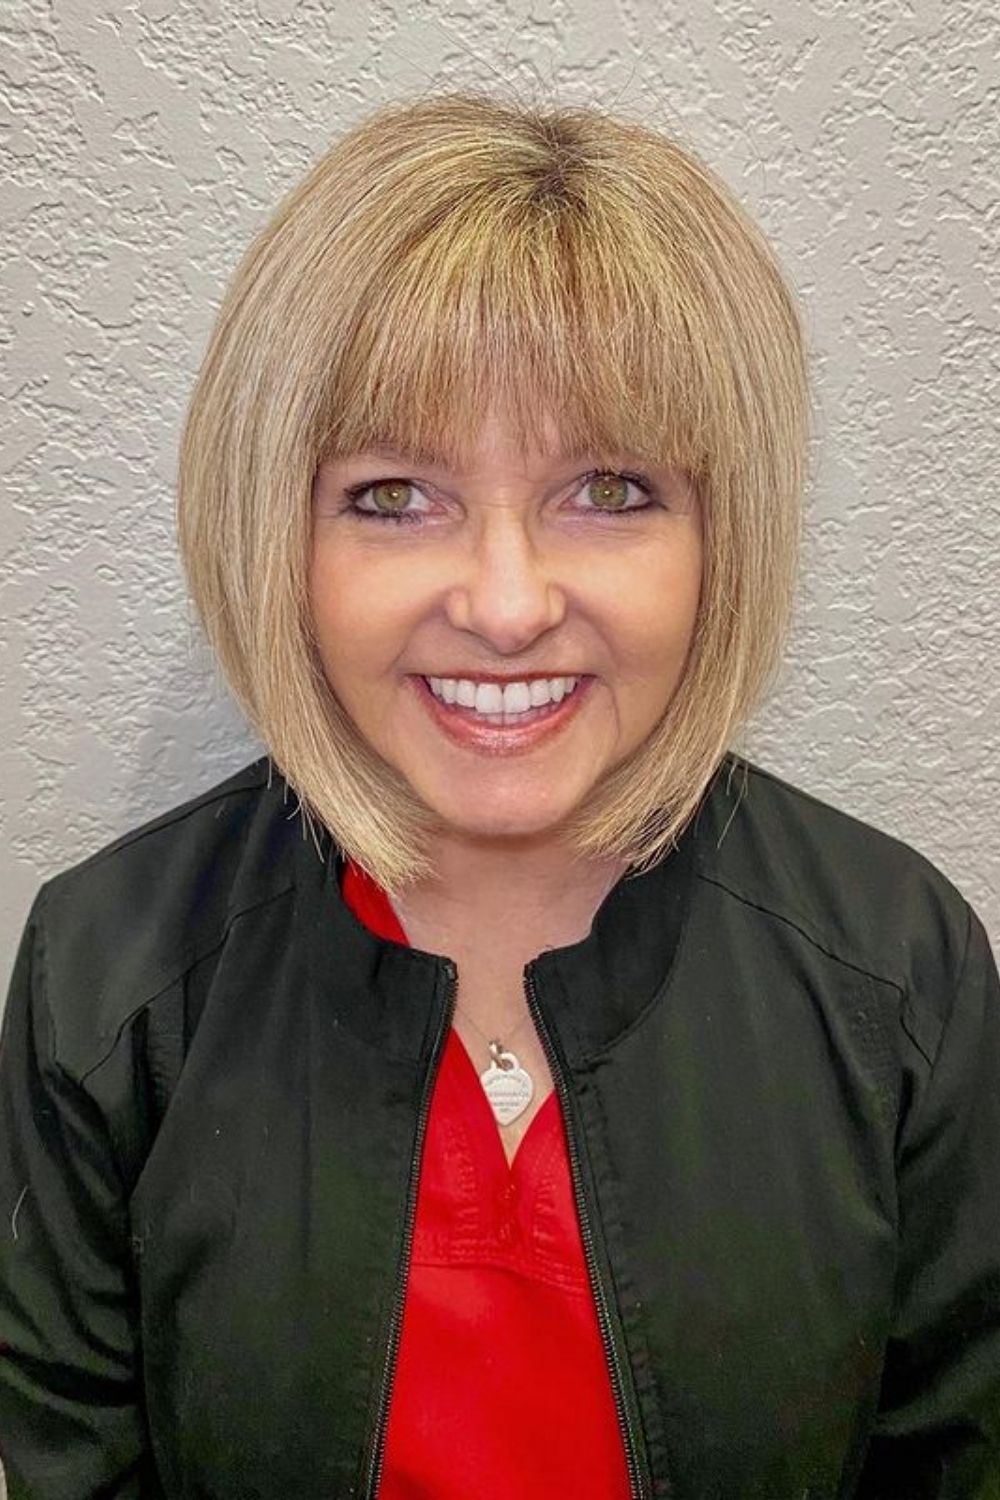 50 Cute Short Hairstyles for Women Over 60 (Updated 2021) 660c99dcdce0cd81295f6e3ee23f5ac0